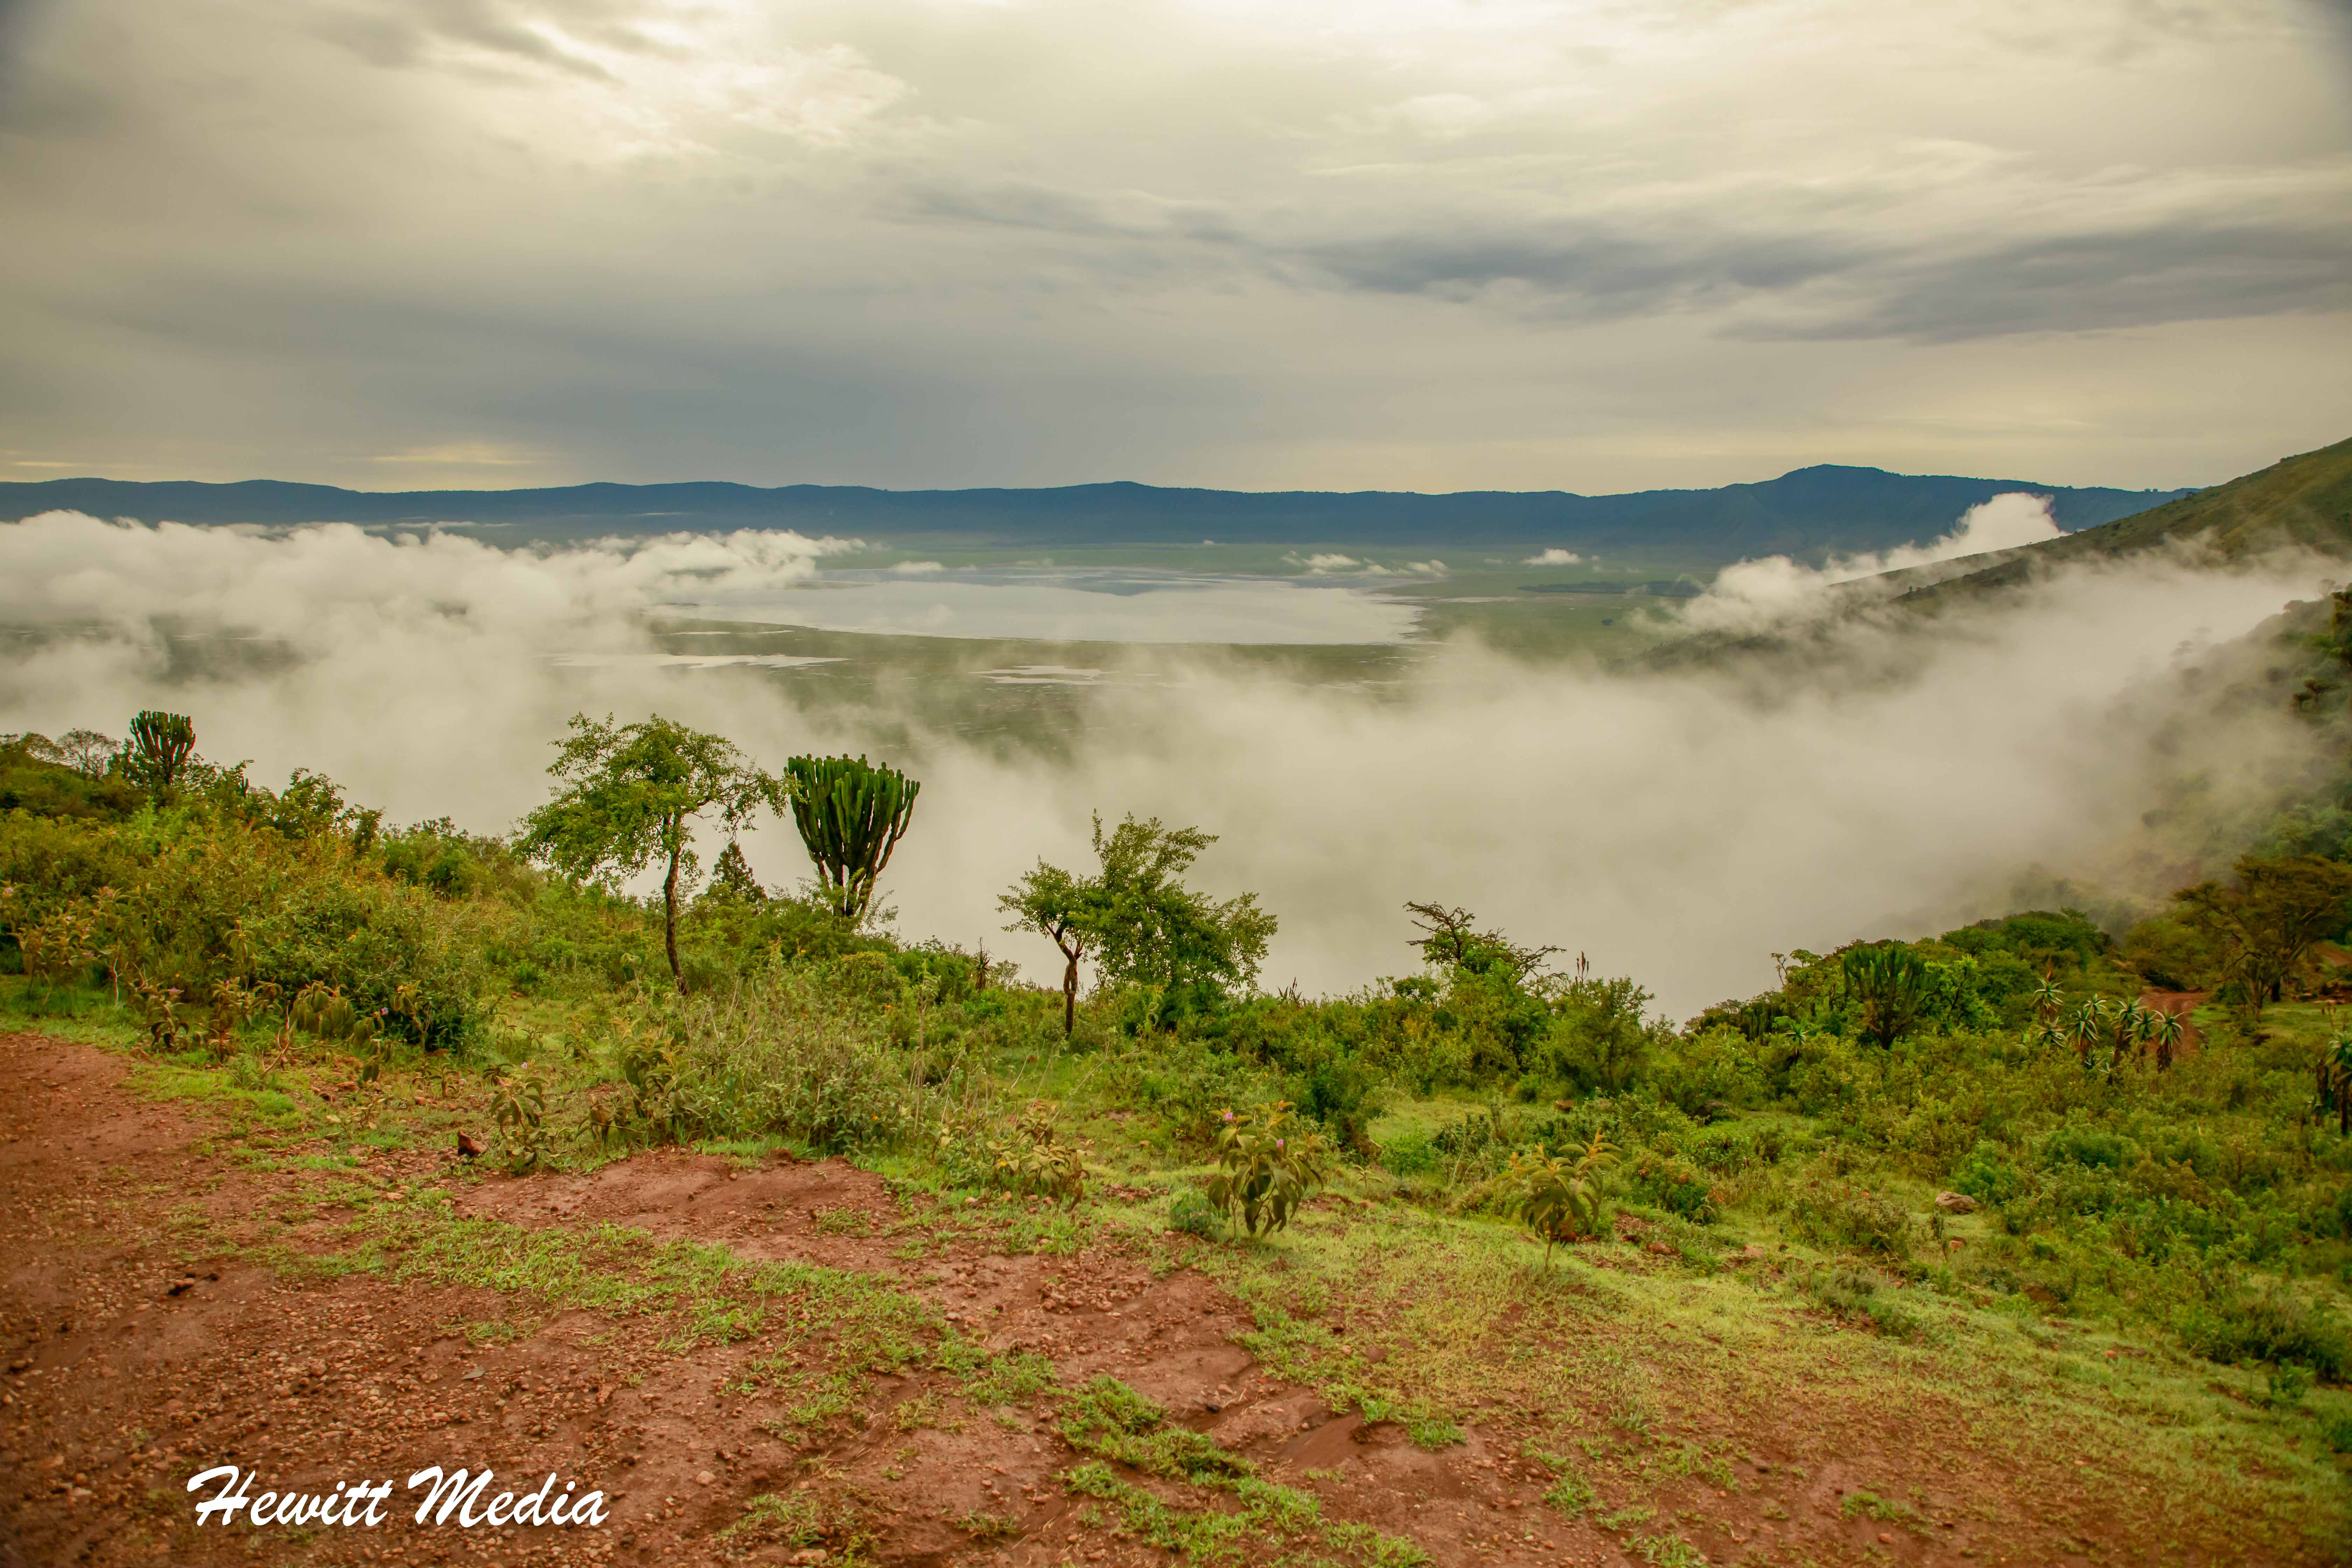 A view from the top of the Ngorongoro Crater